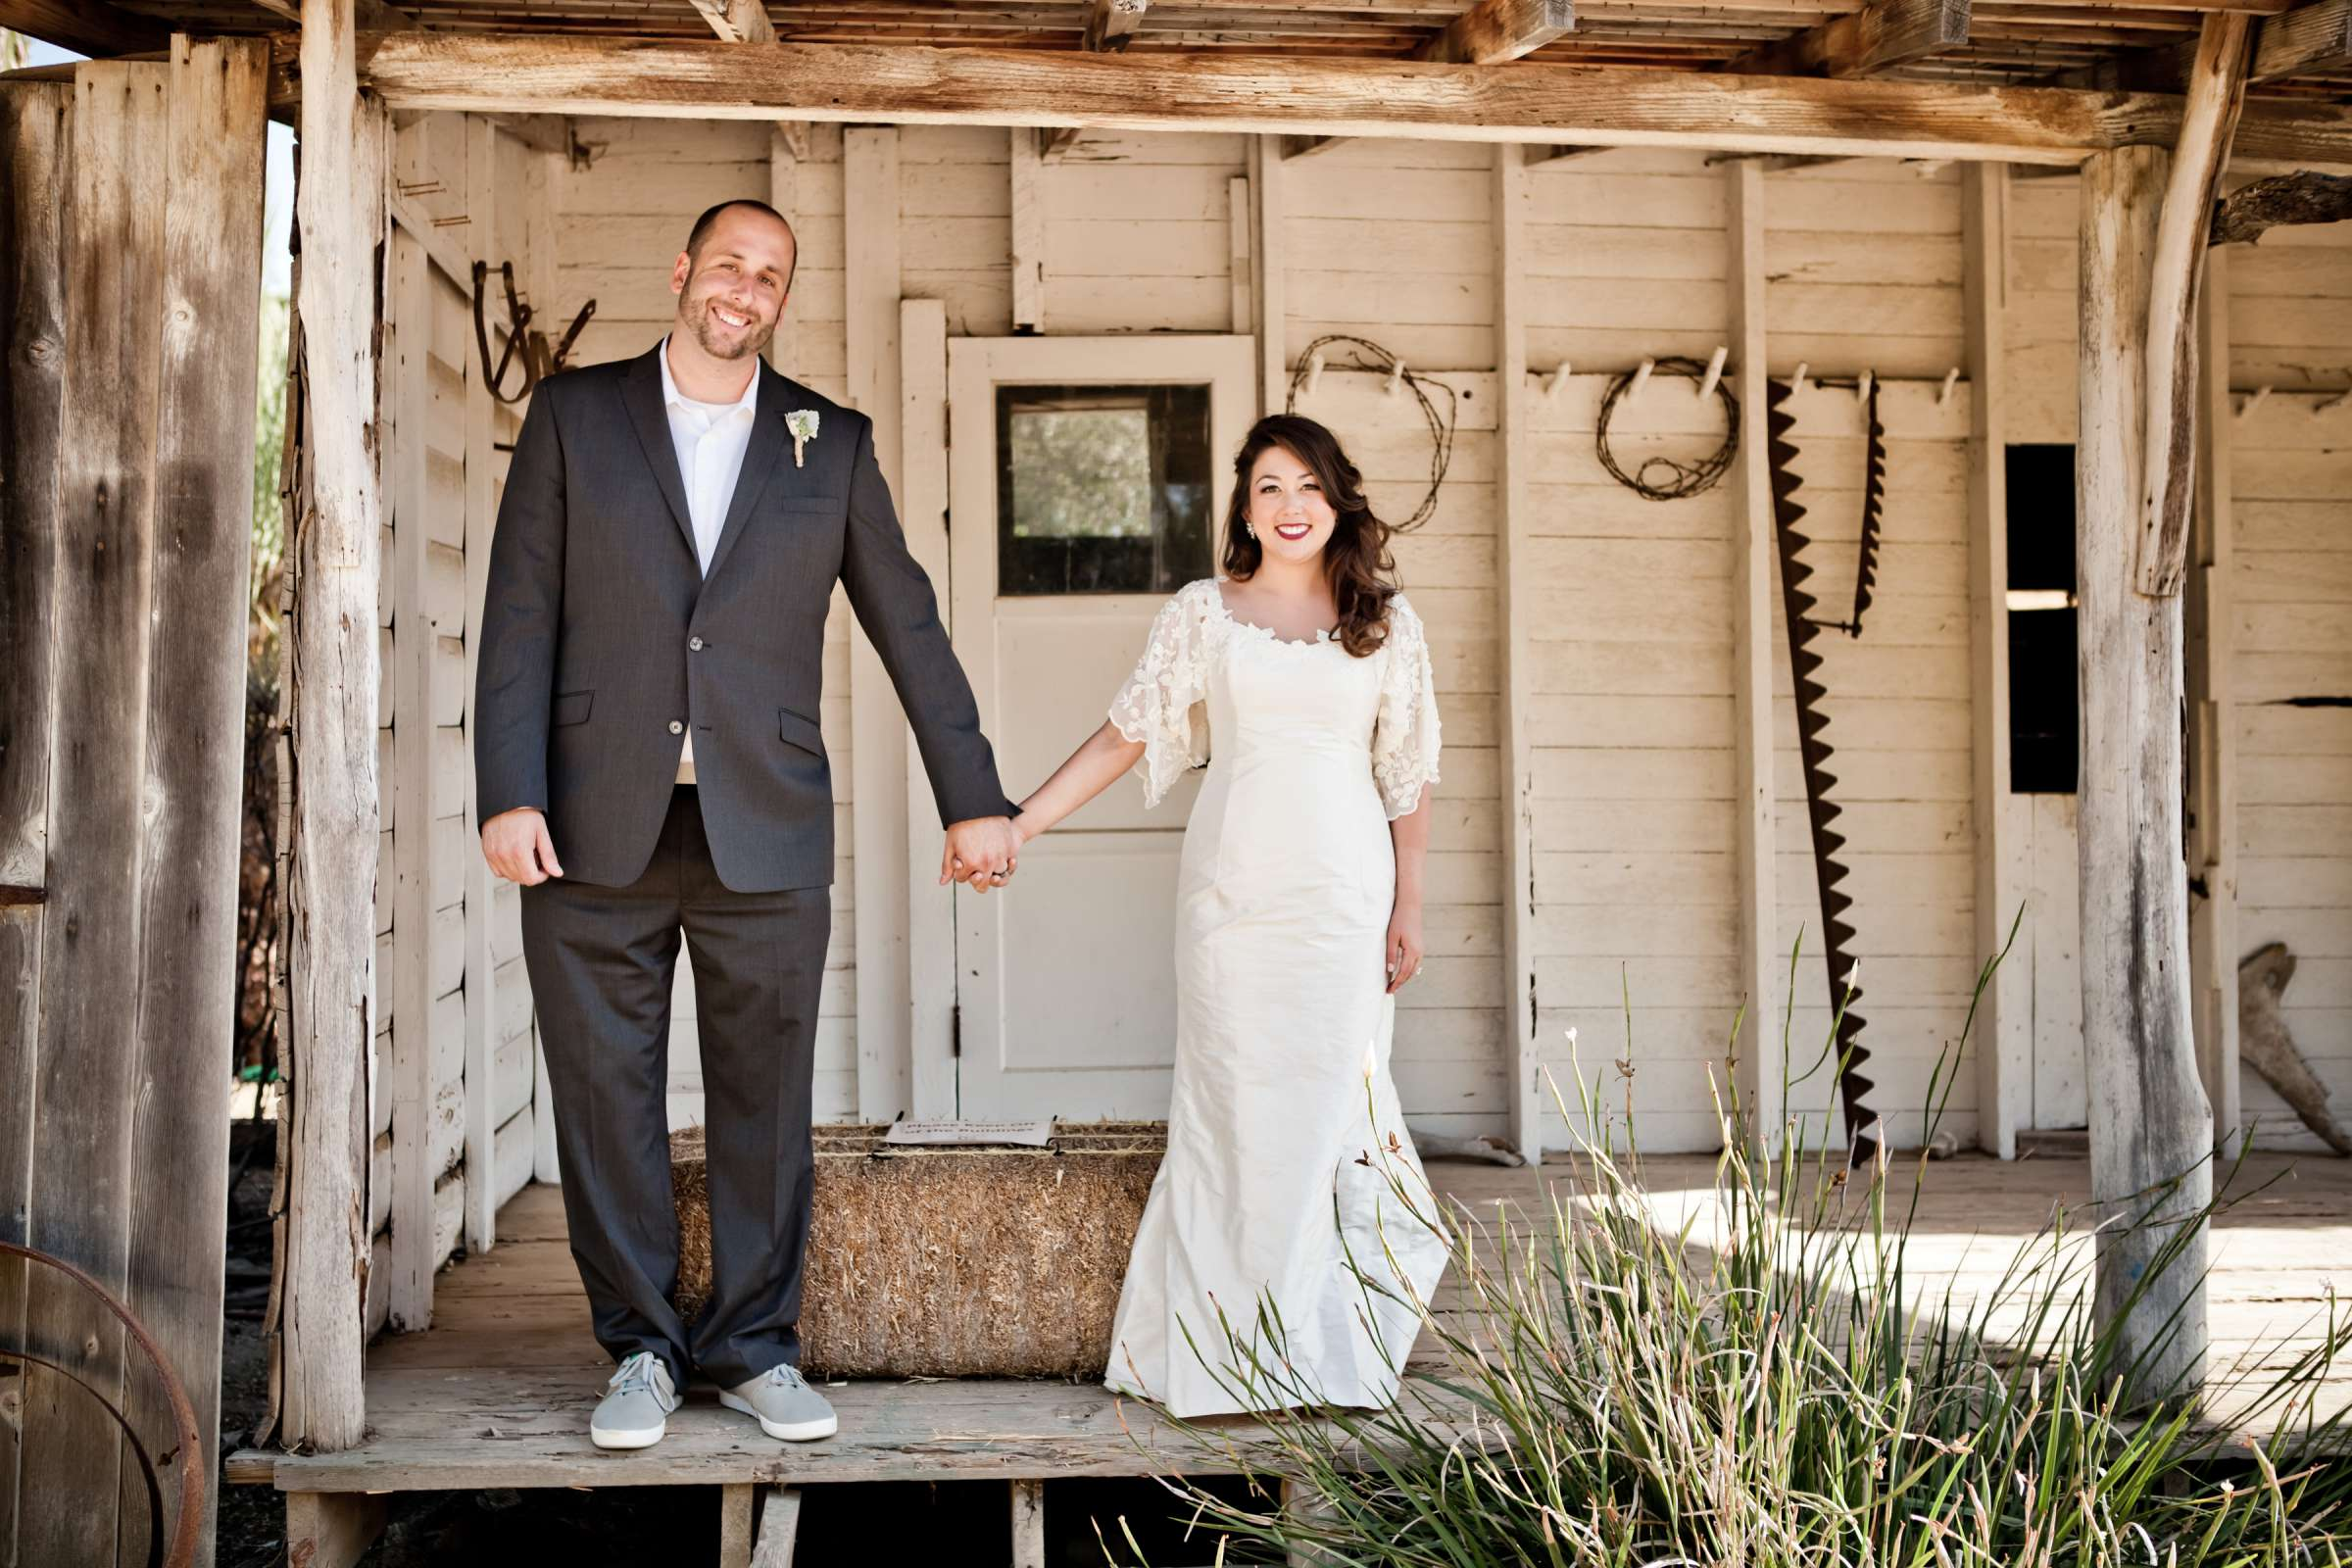 Leo Carrillo Ranch Wedding coordinated by Weddings by Lisa Nicole, Bethany and Aaron Wedding Photo #2 by True Photography